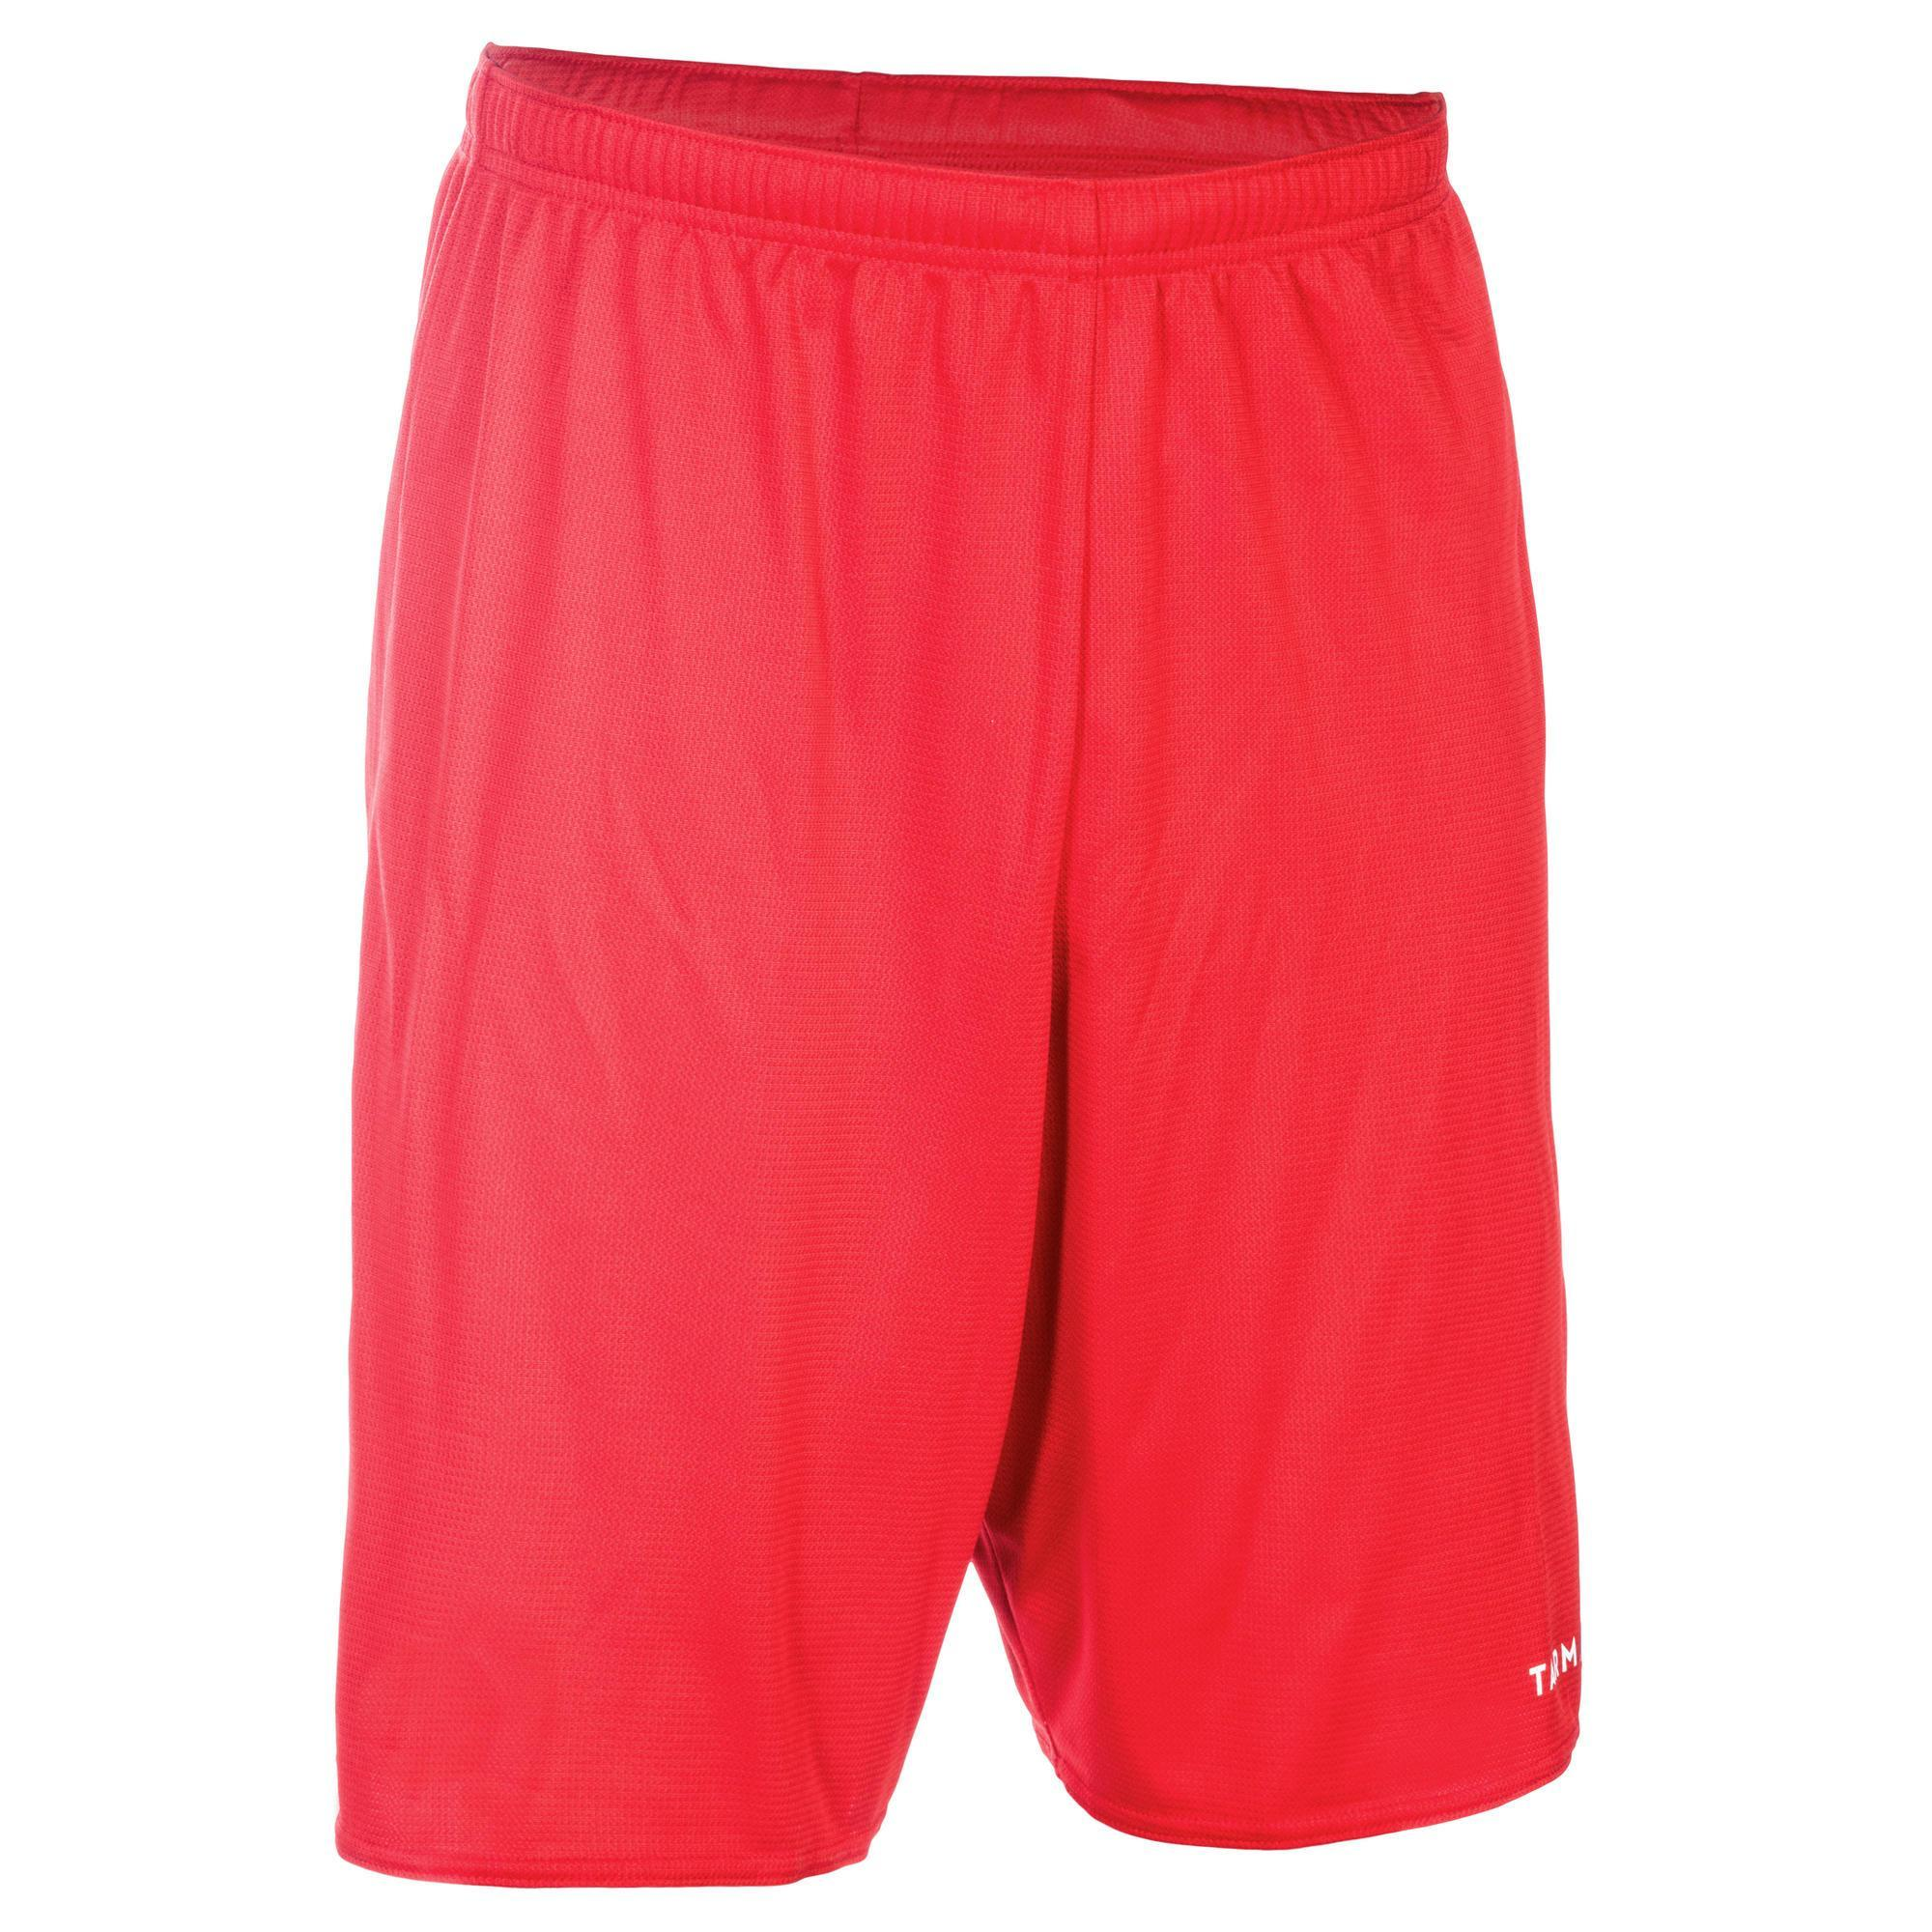 Short de basketball homme sh100 rouge tarmak